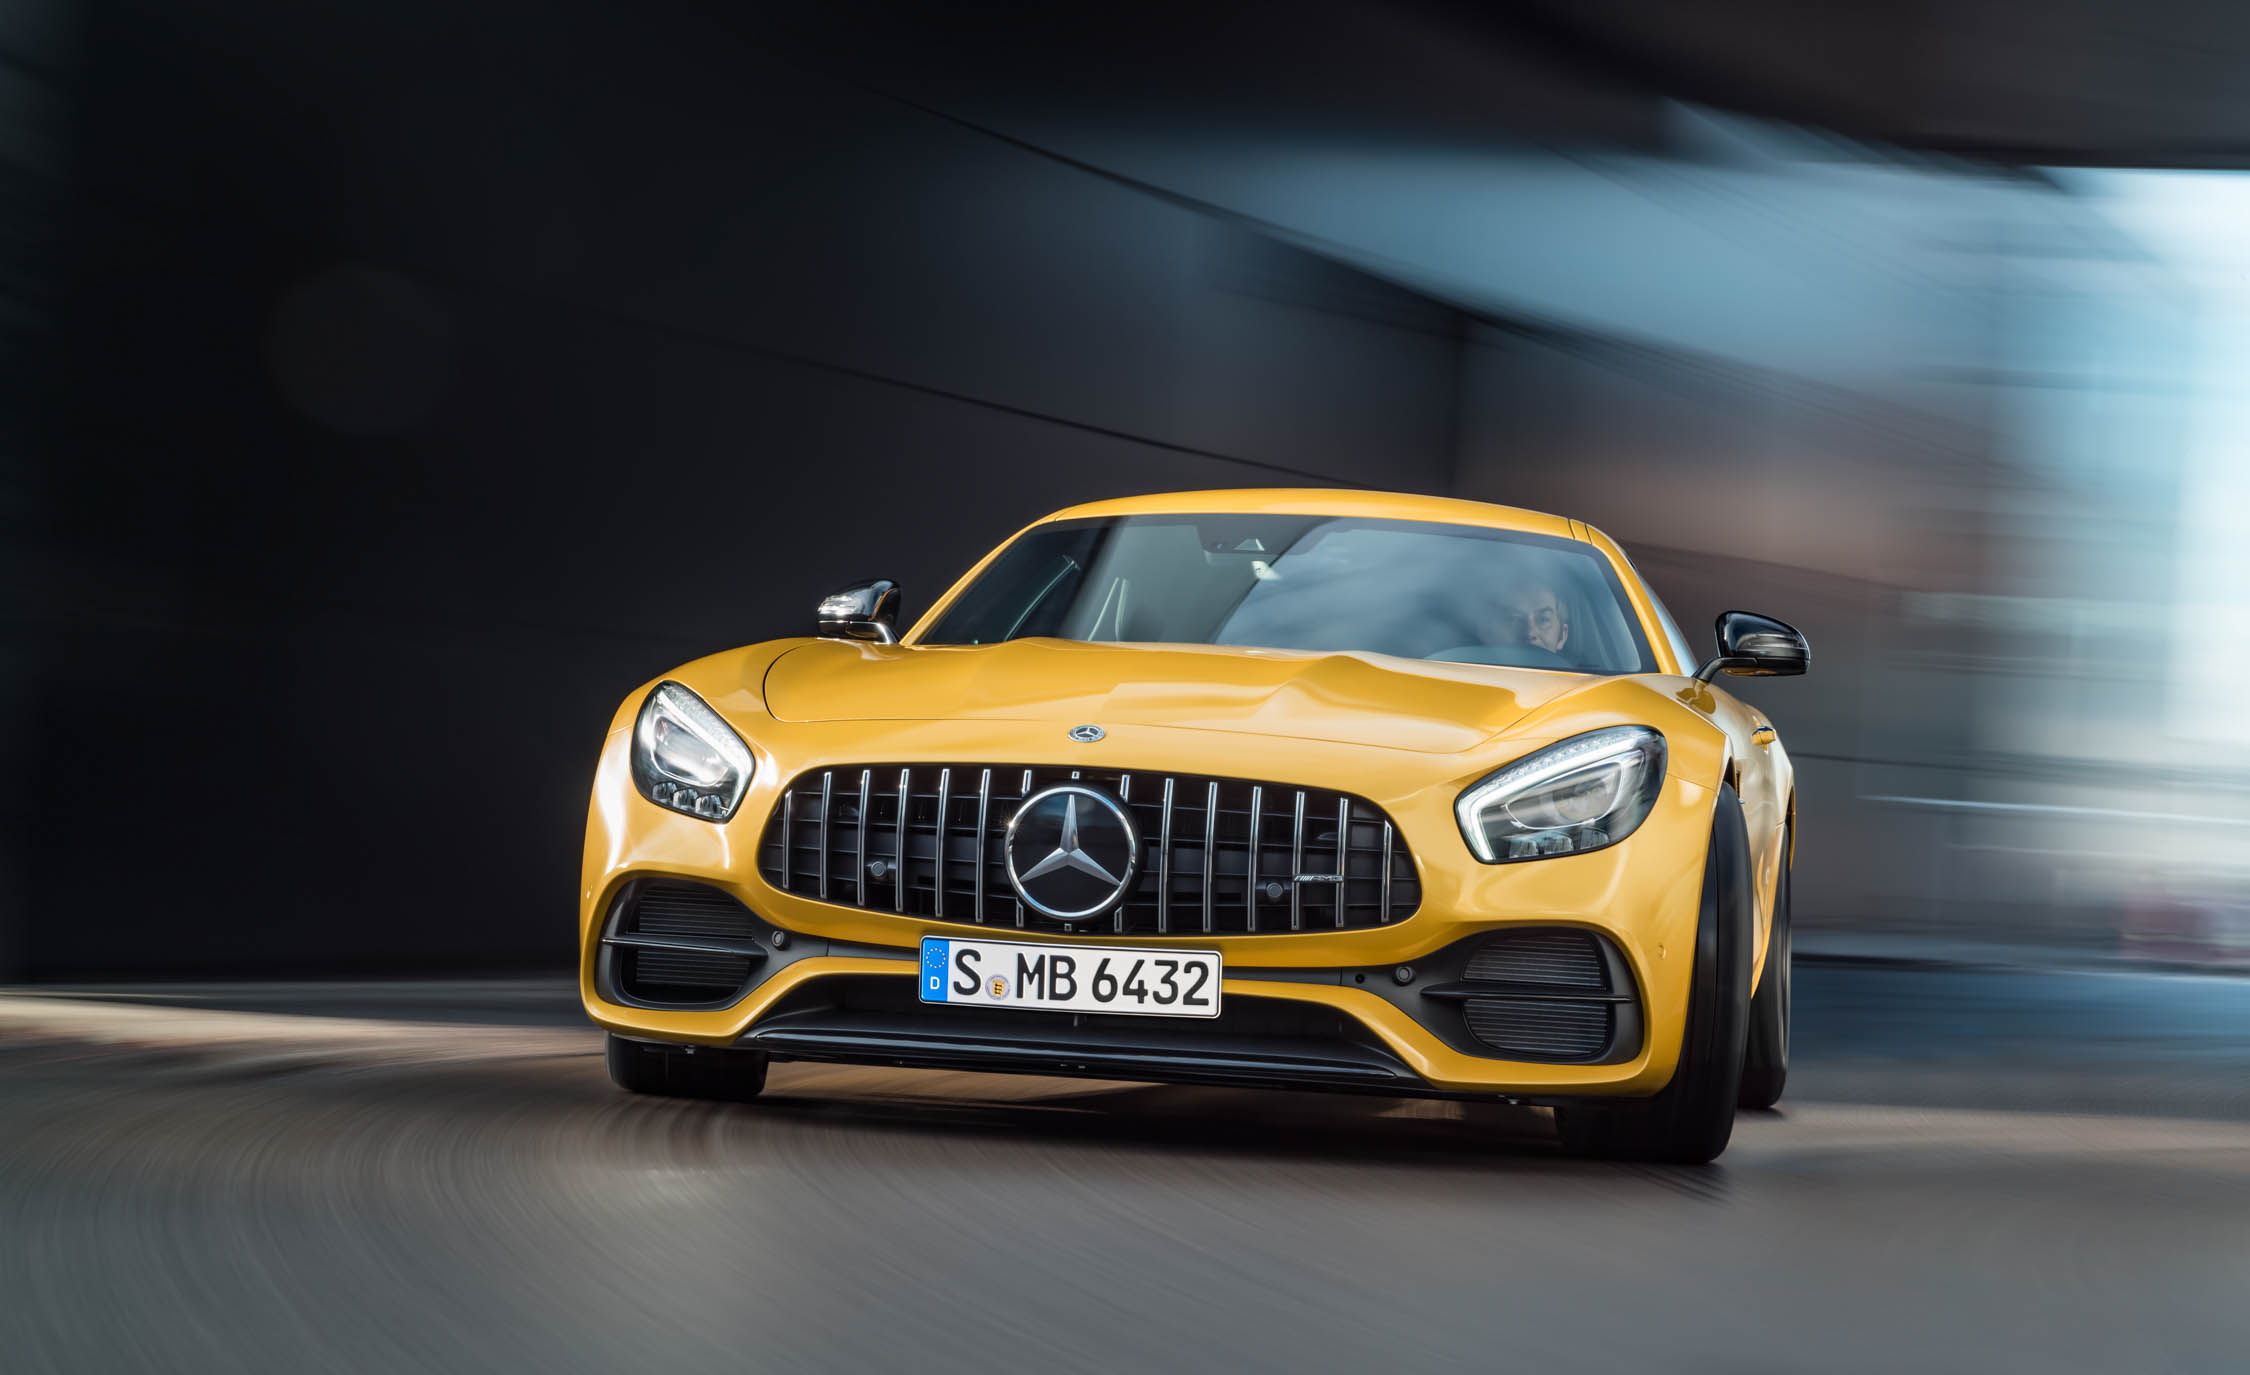 2018 Mercedes Amg Gt S Exterior Front (Photo 18 of 23)